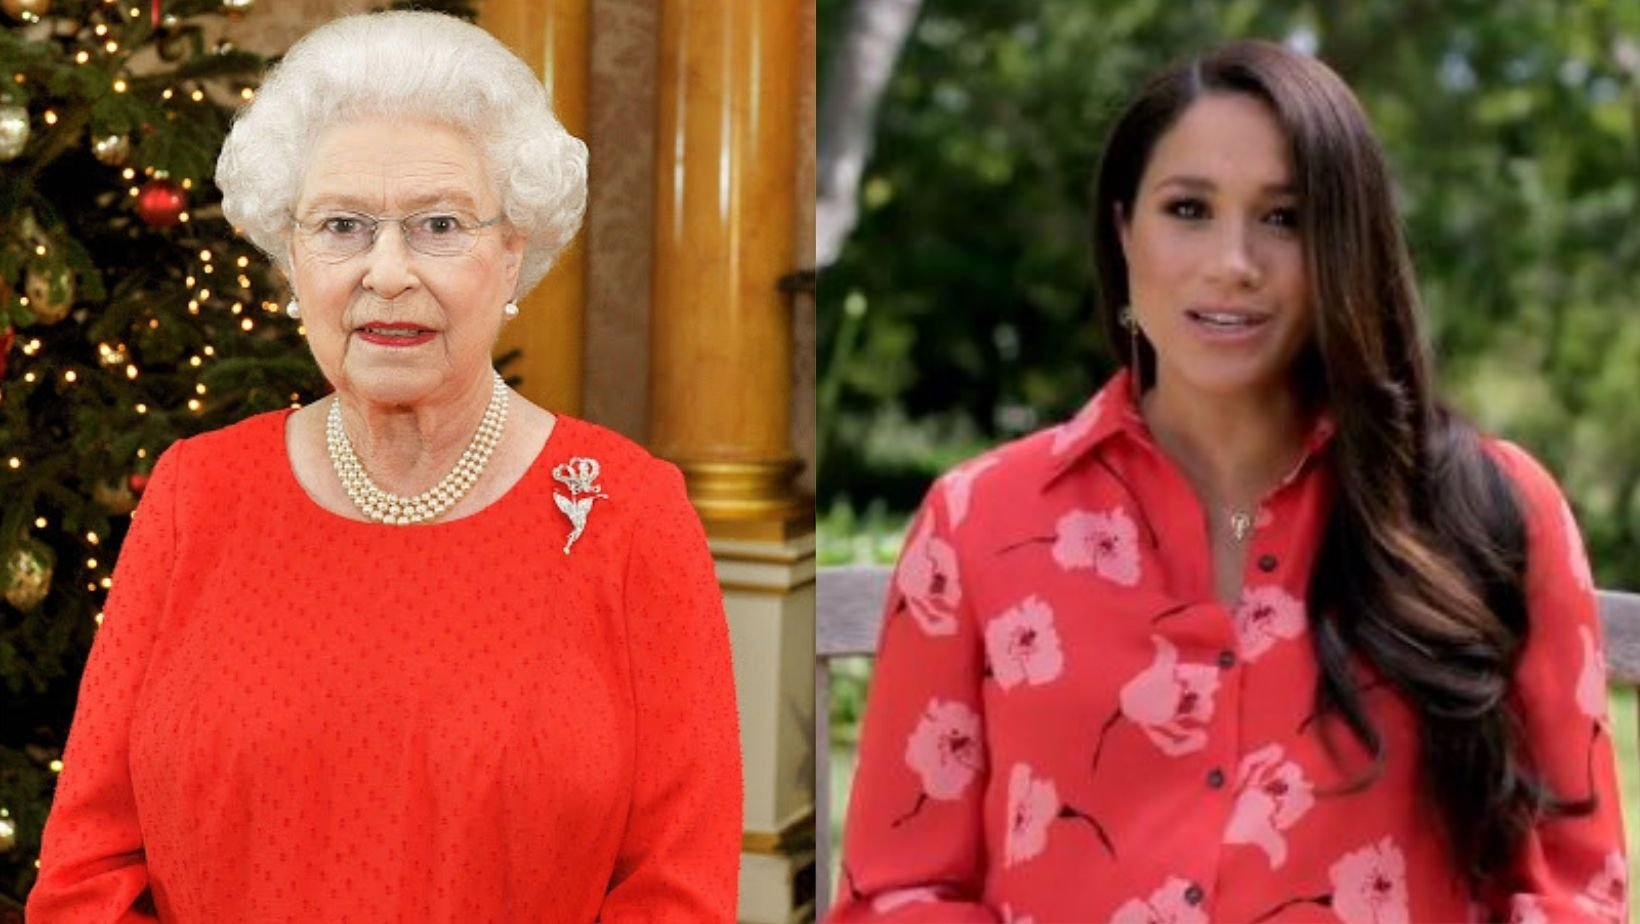 1 62.jpg?resize=1200,630 - Meghan Nervously Copied The Queen In Her First TV Appearance, Body Language Expert Claims